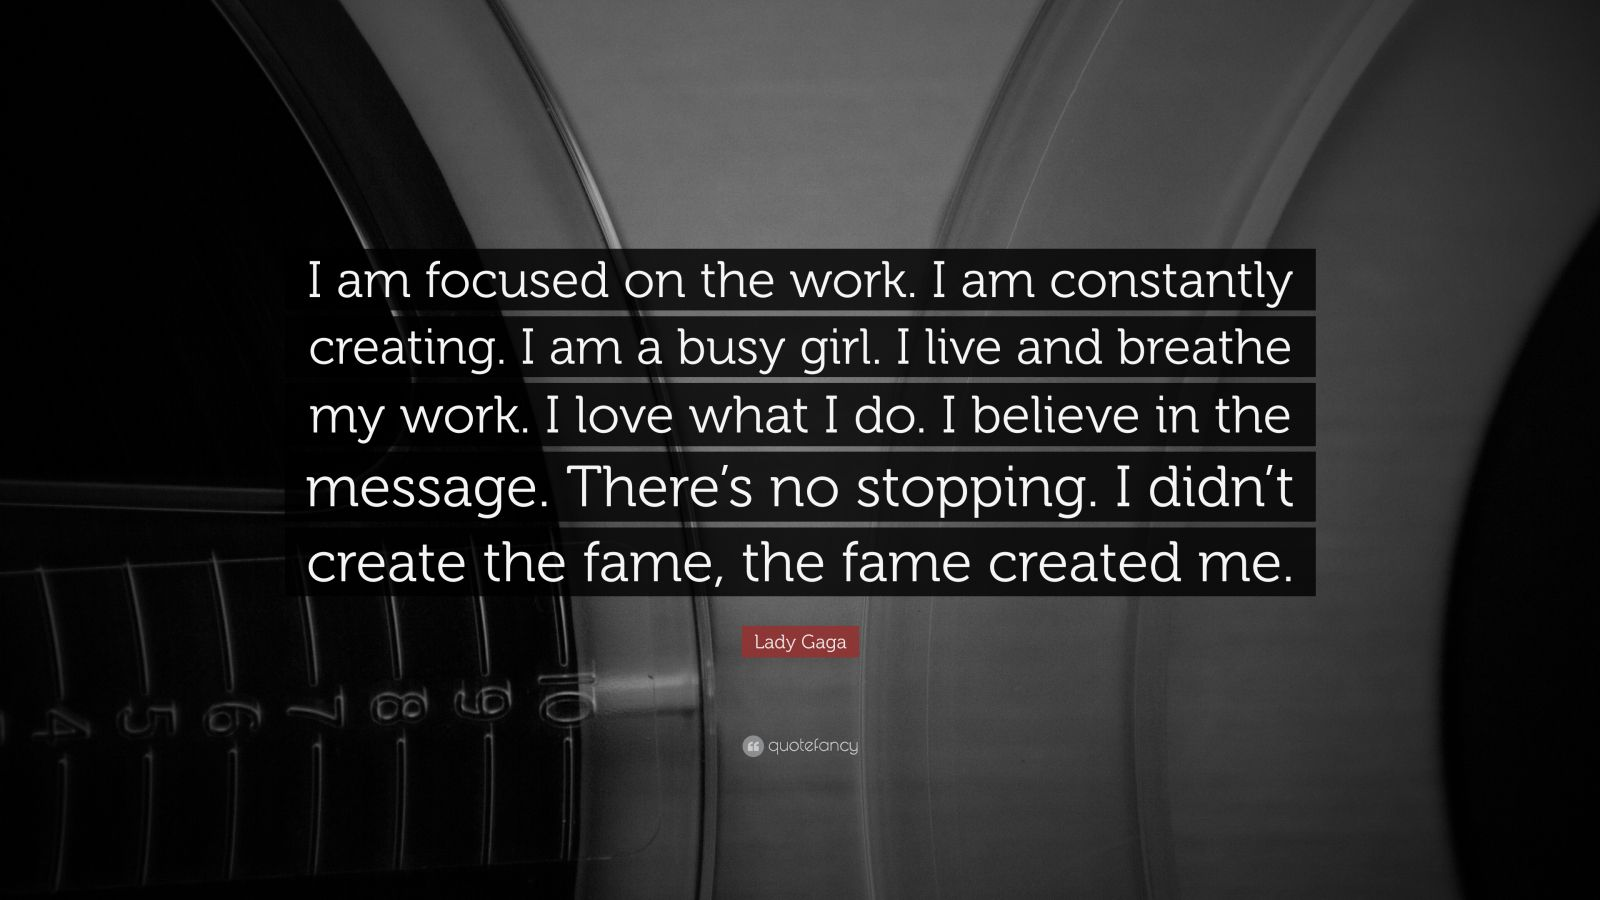 """Lady Gaga Quote: """"I am focused on the work. I am constantly creating. I am a busy girl. I live and breathe my work. I love what I do. I believe in the message. There's no stopping. I didn't create the fame, the fame created me."""""""